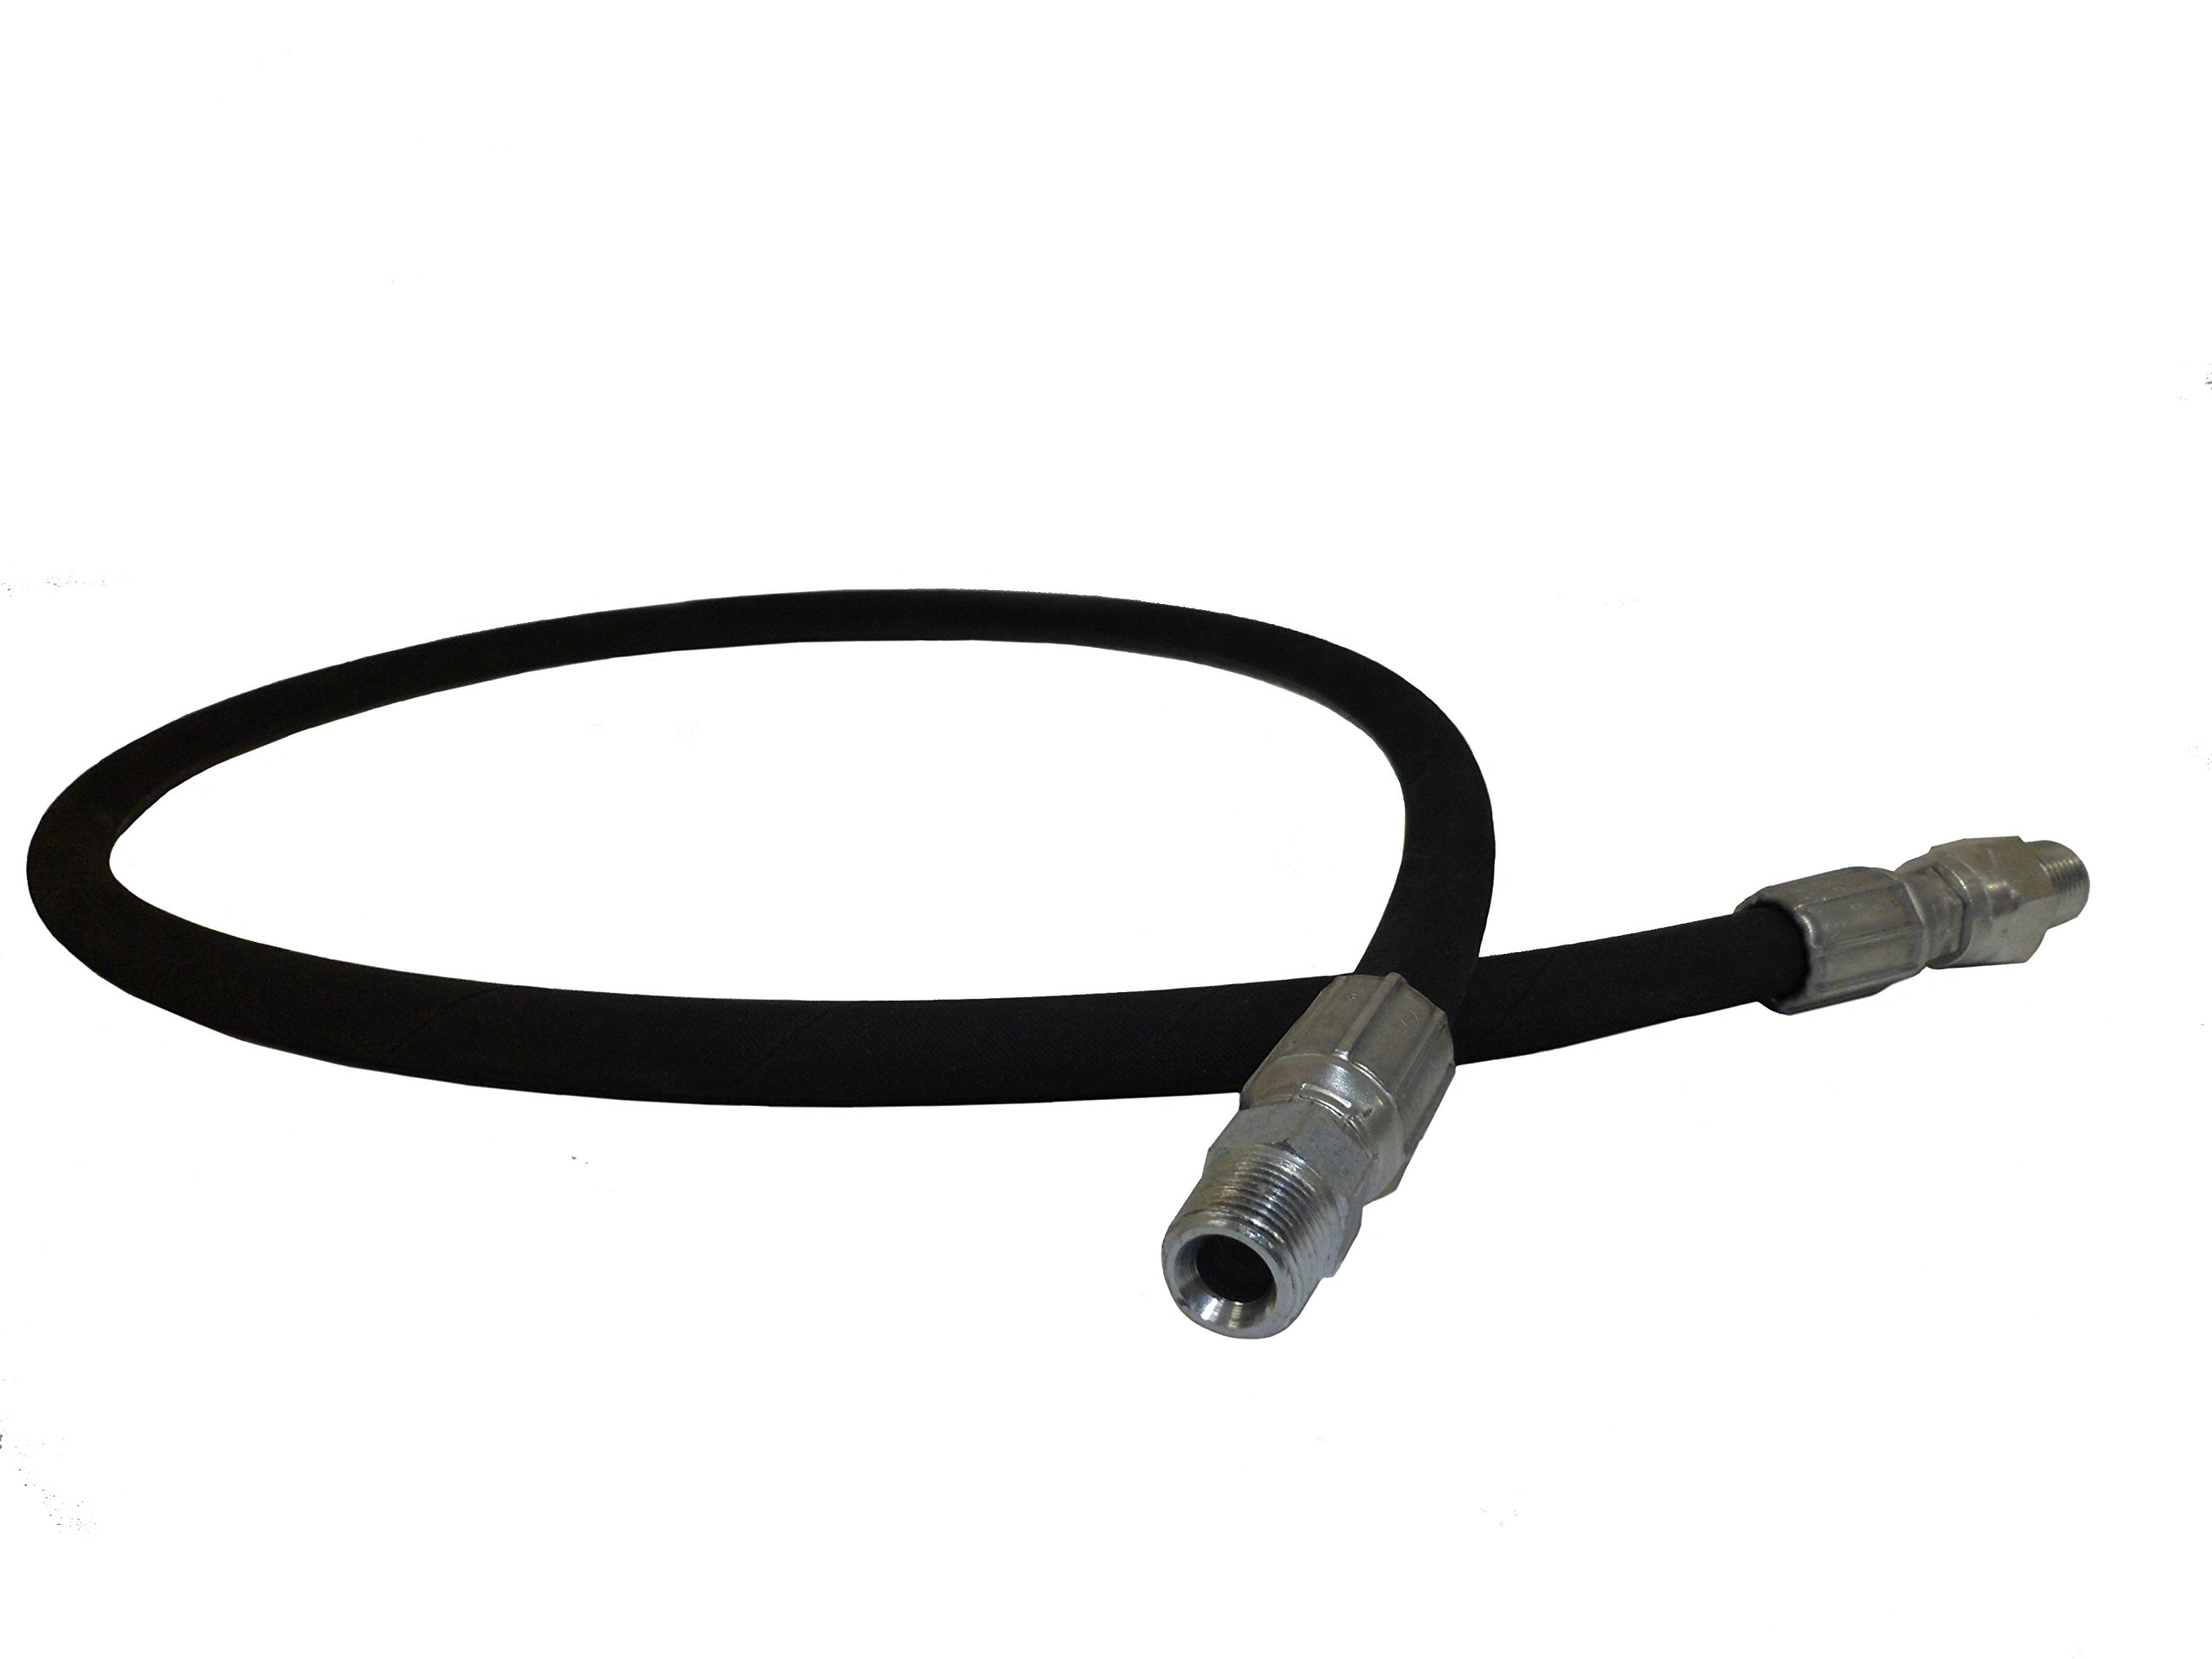 Ultimate Washer UW16-SEE49A Pressure Washer Jumper Connection Hose, 4FT Hose, 3/8-Inch Male Pipe Thread, 4000 PSI Rated by Ultimate Washer